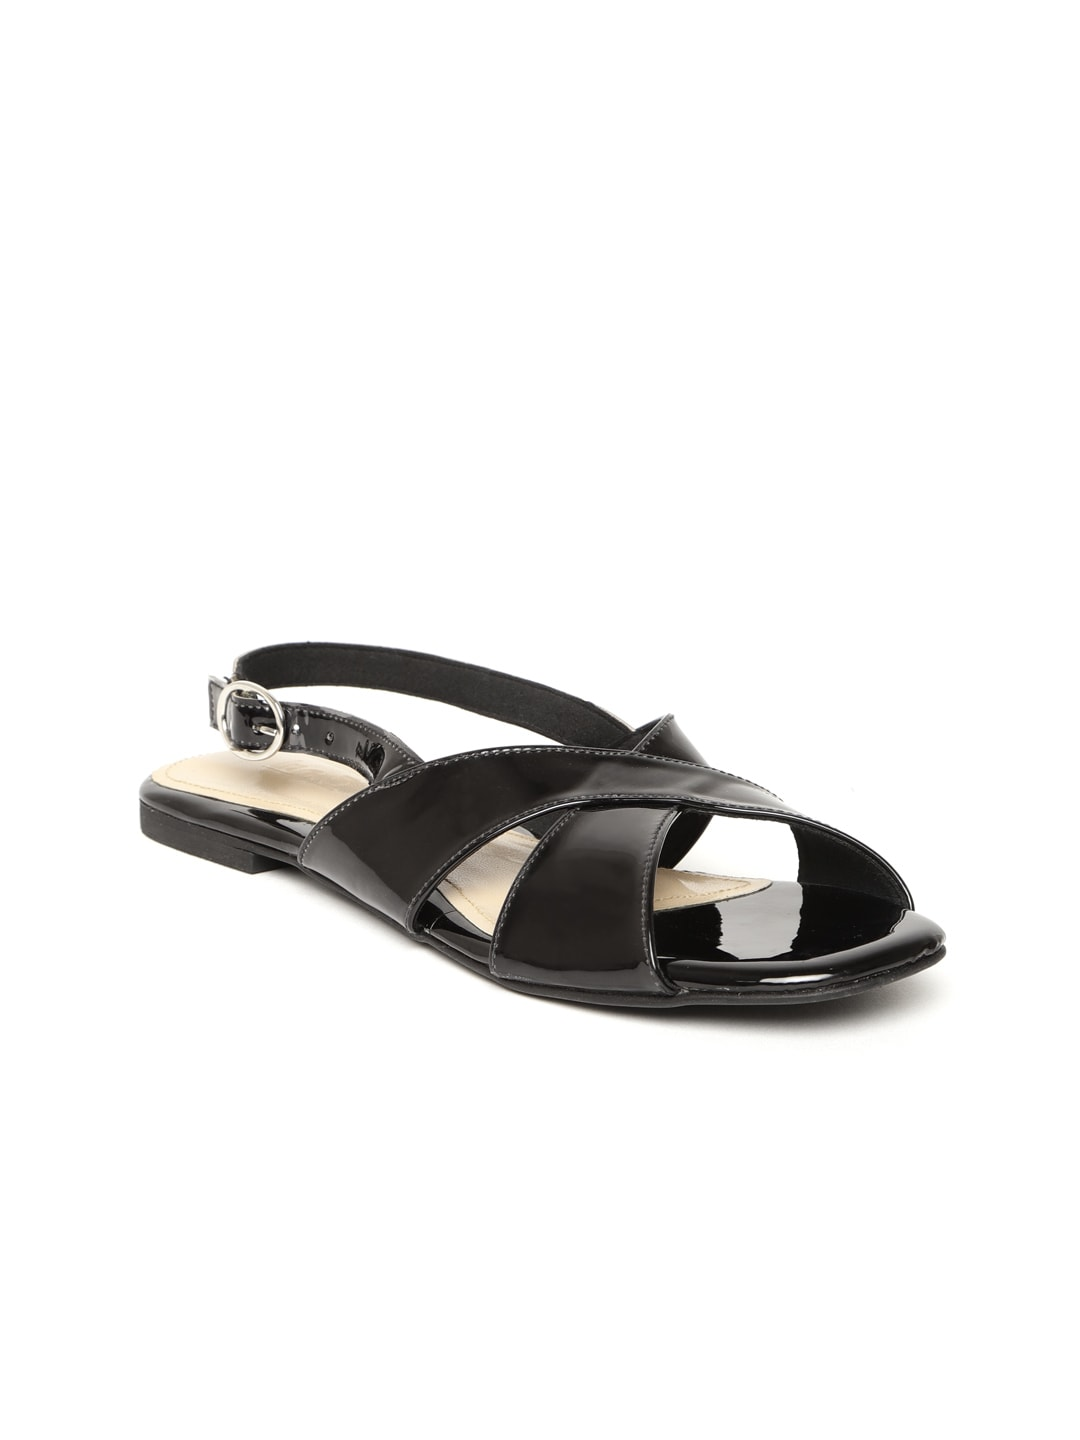 a2217dd3bef7 Flats - Buy Womens Flats and Sandals Online in India